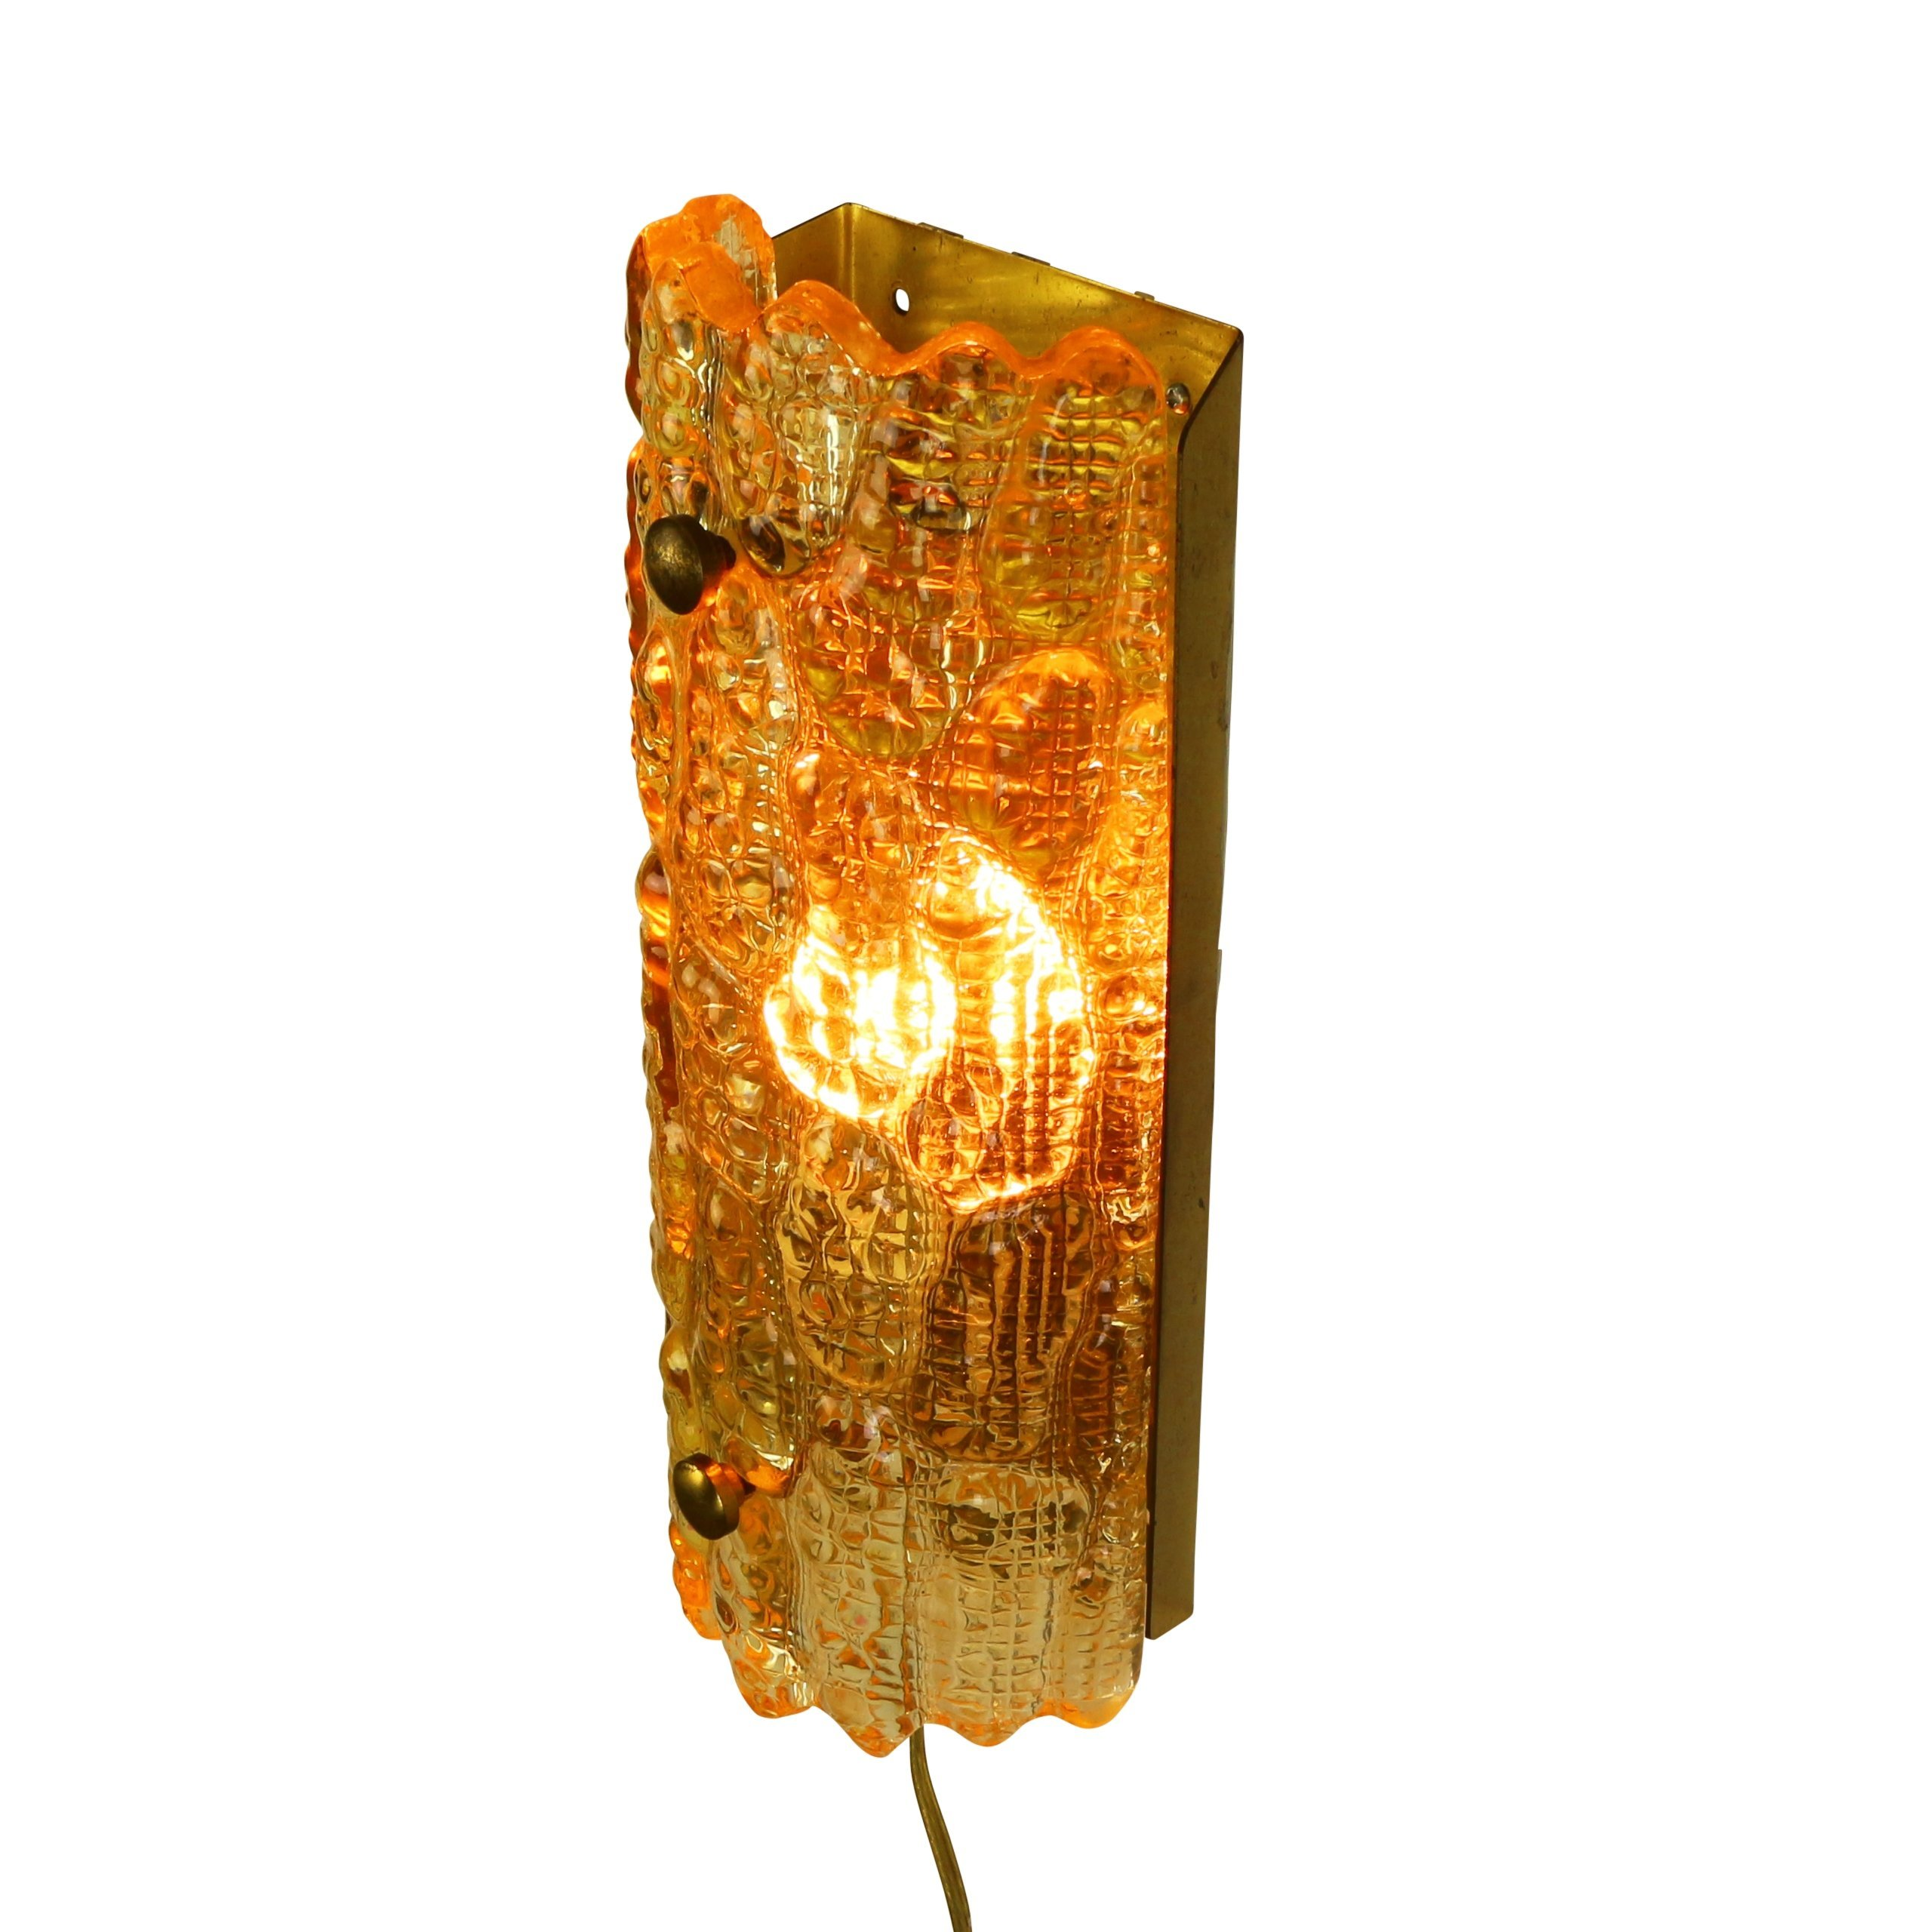 Patterned Glass Wall Lights : Relief patterned glass wall light called Orrefors Geffion produced in the sixties by Lyfa ...